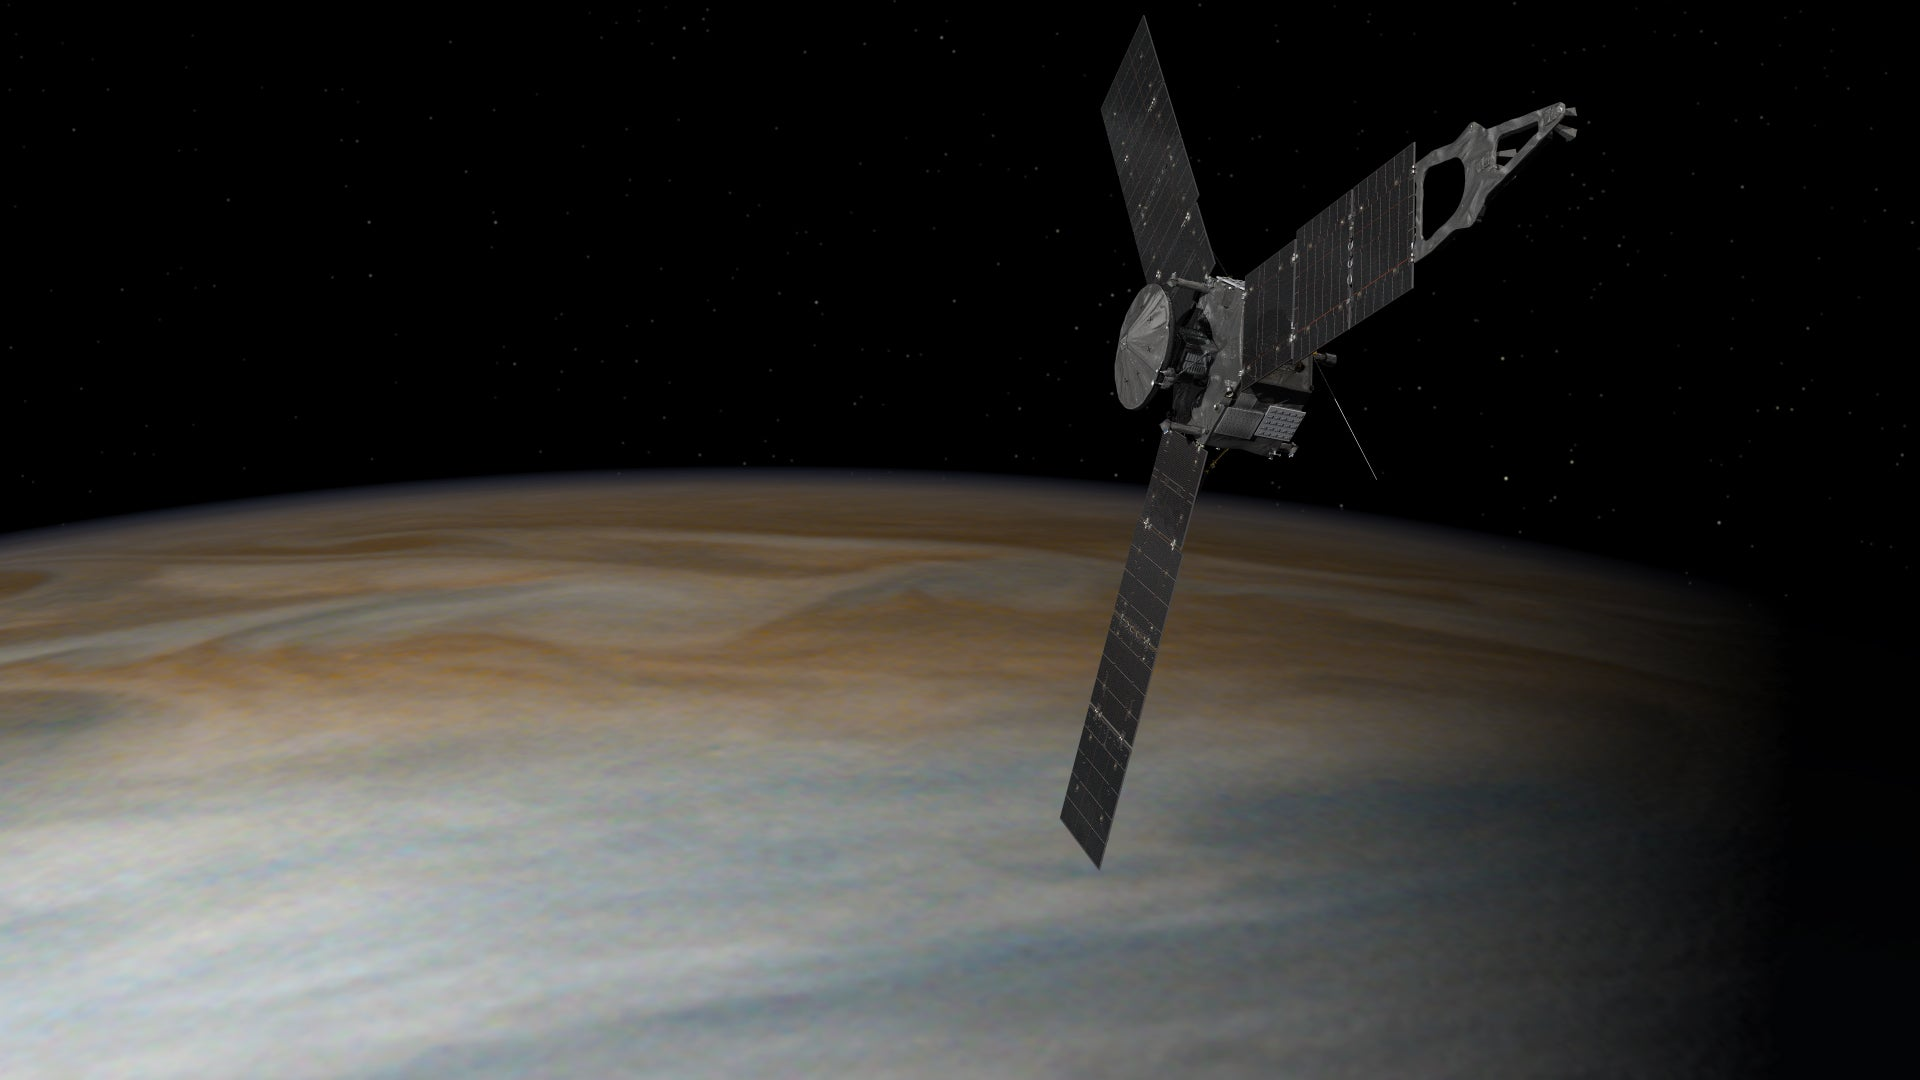 NASA's Juno Mission Faces More Delays As Engine Problem Remains Unresolved